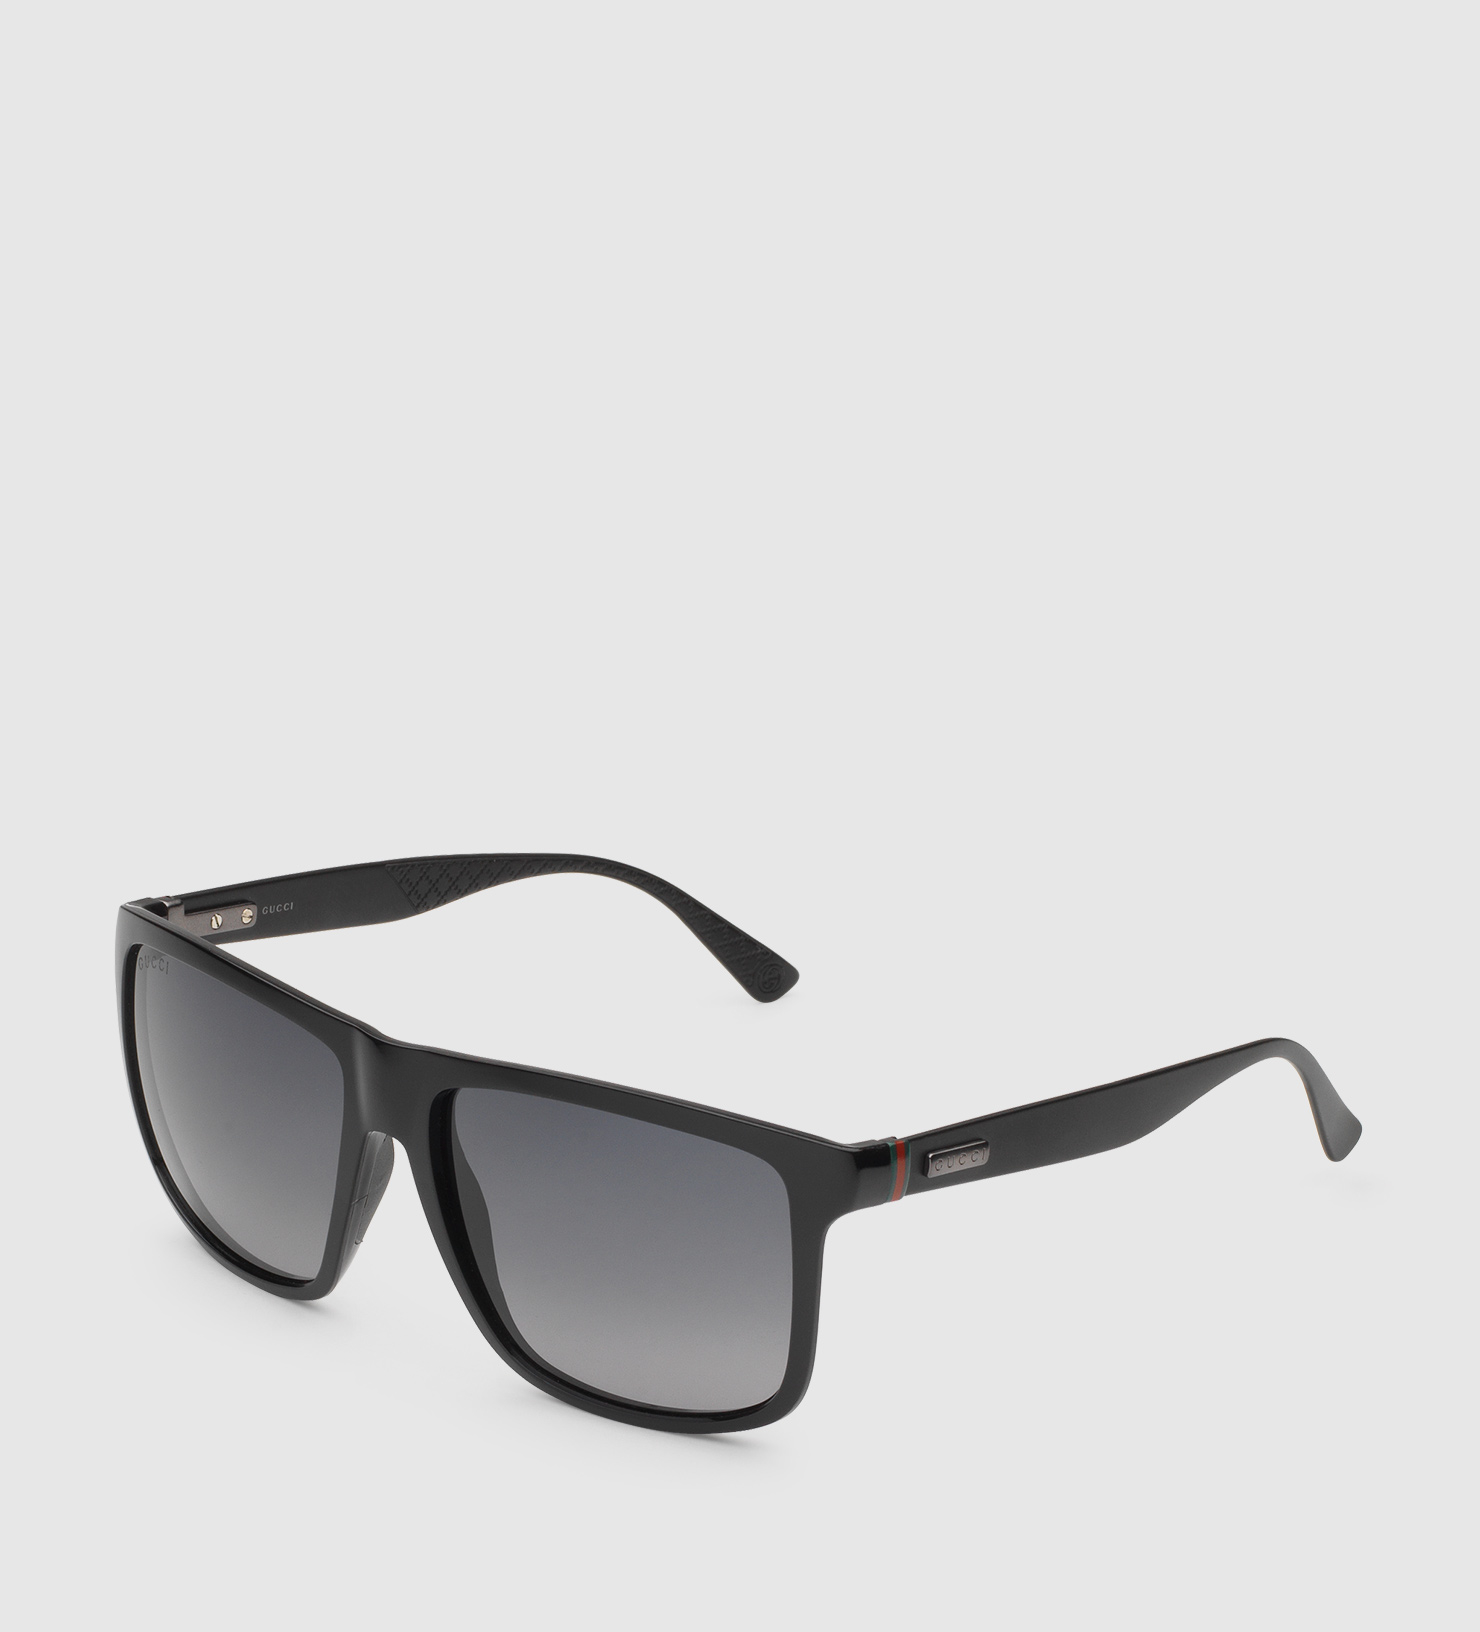 372f1fa0449 Lyst - Gucci Square-frame Aluminum And Injected Sunglasses in Black ...